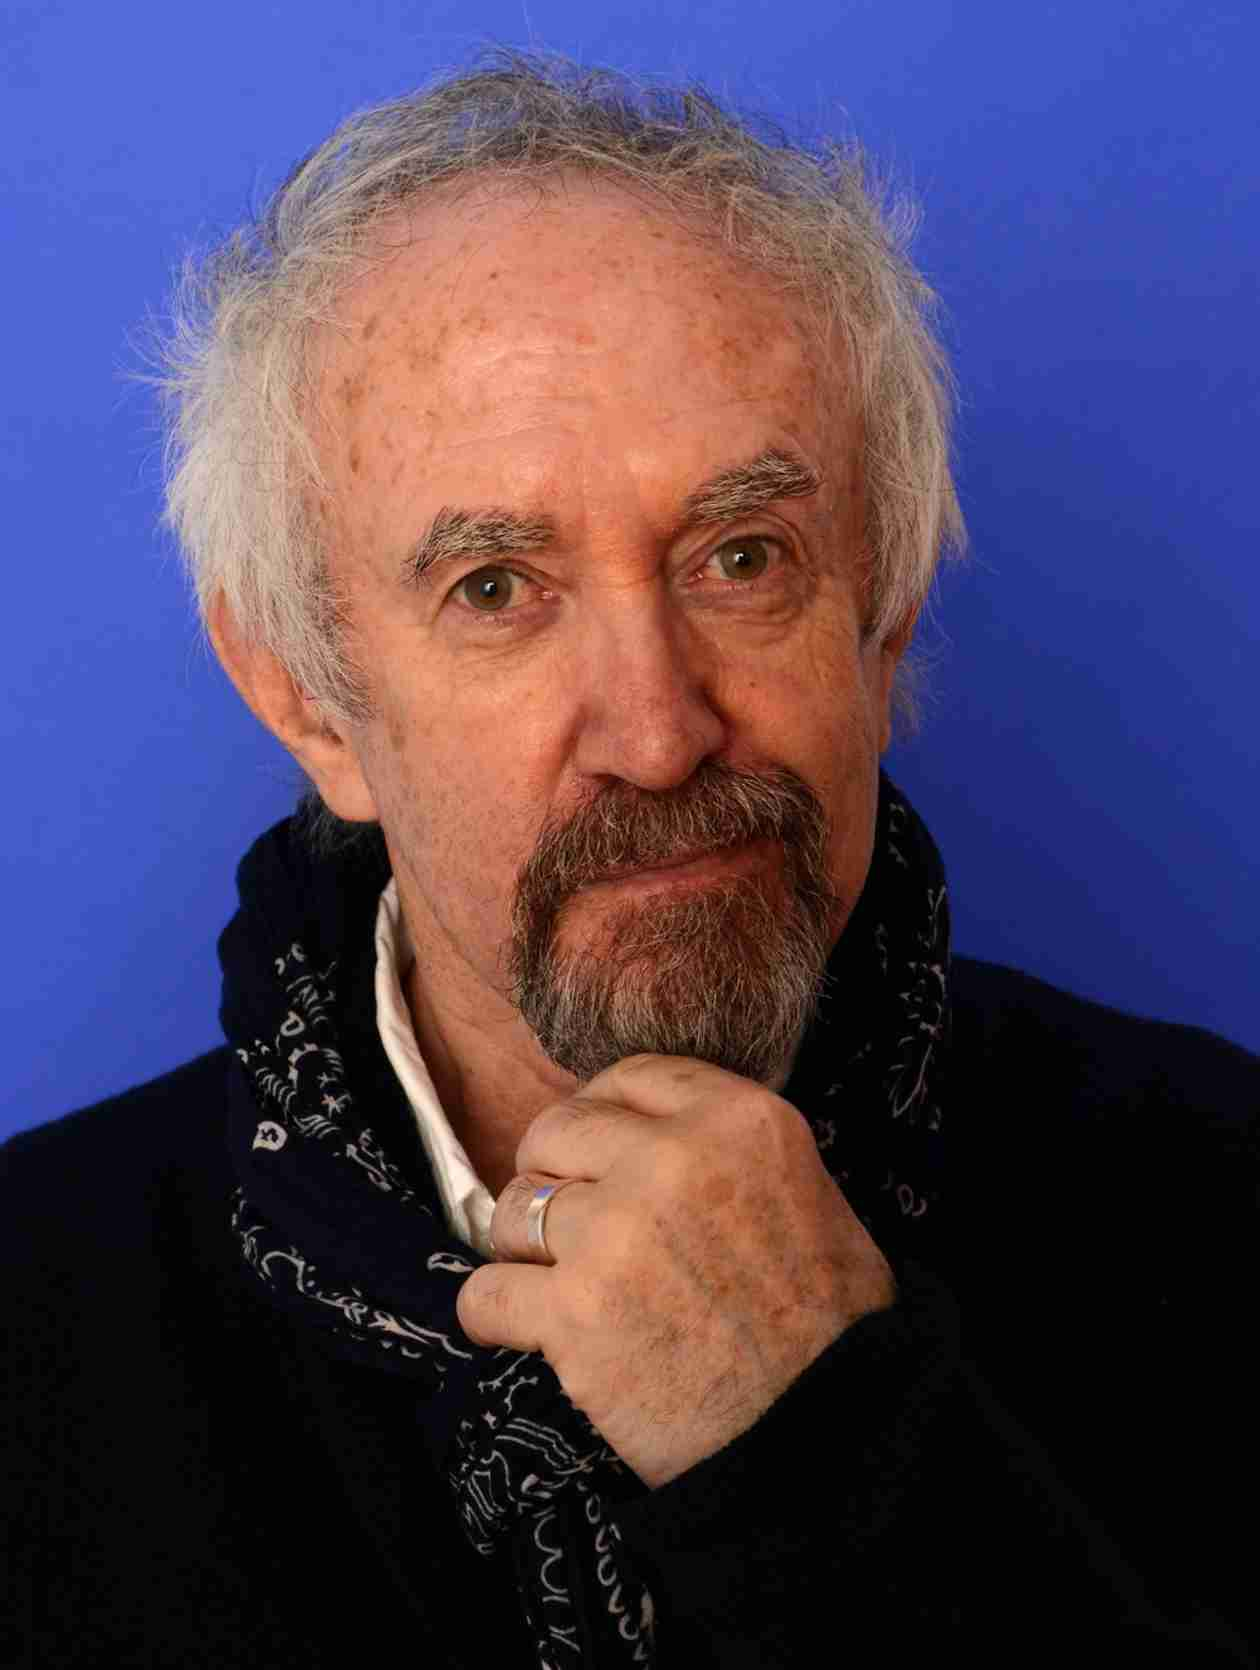 Who Is Jonathan Pryce? 5 Things to Know About the High Sparrow Actor